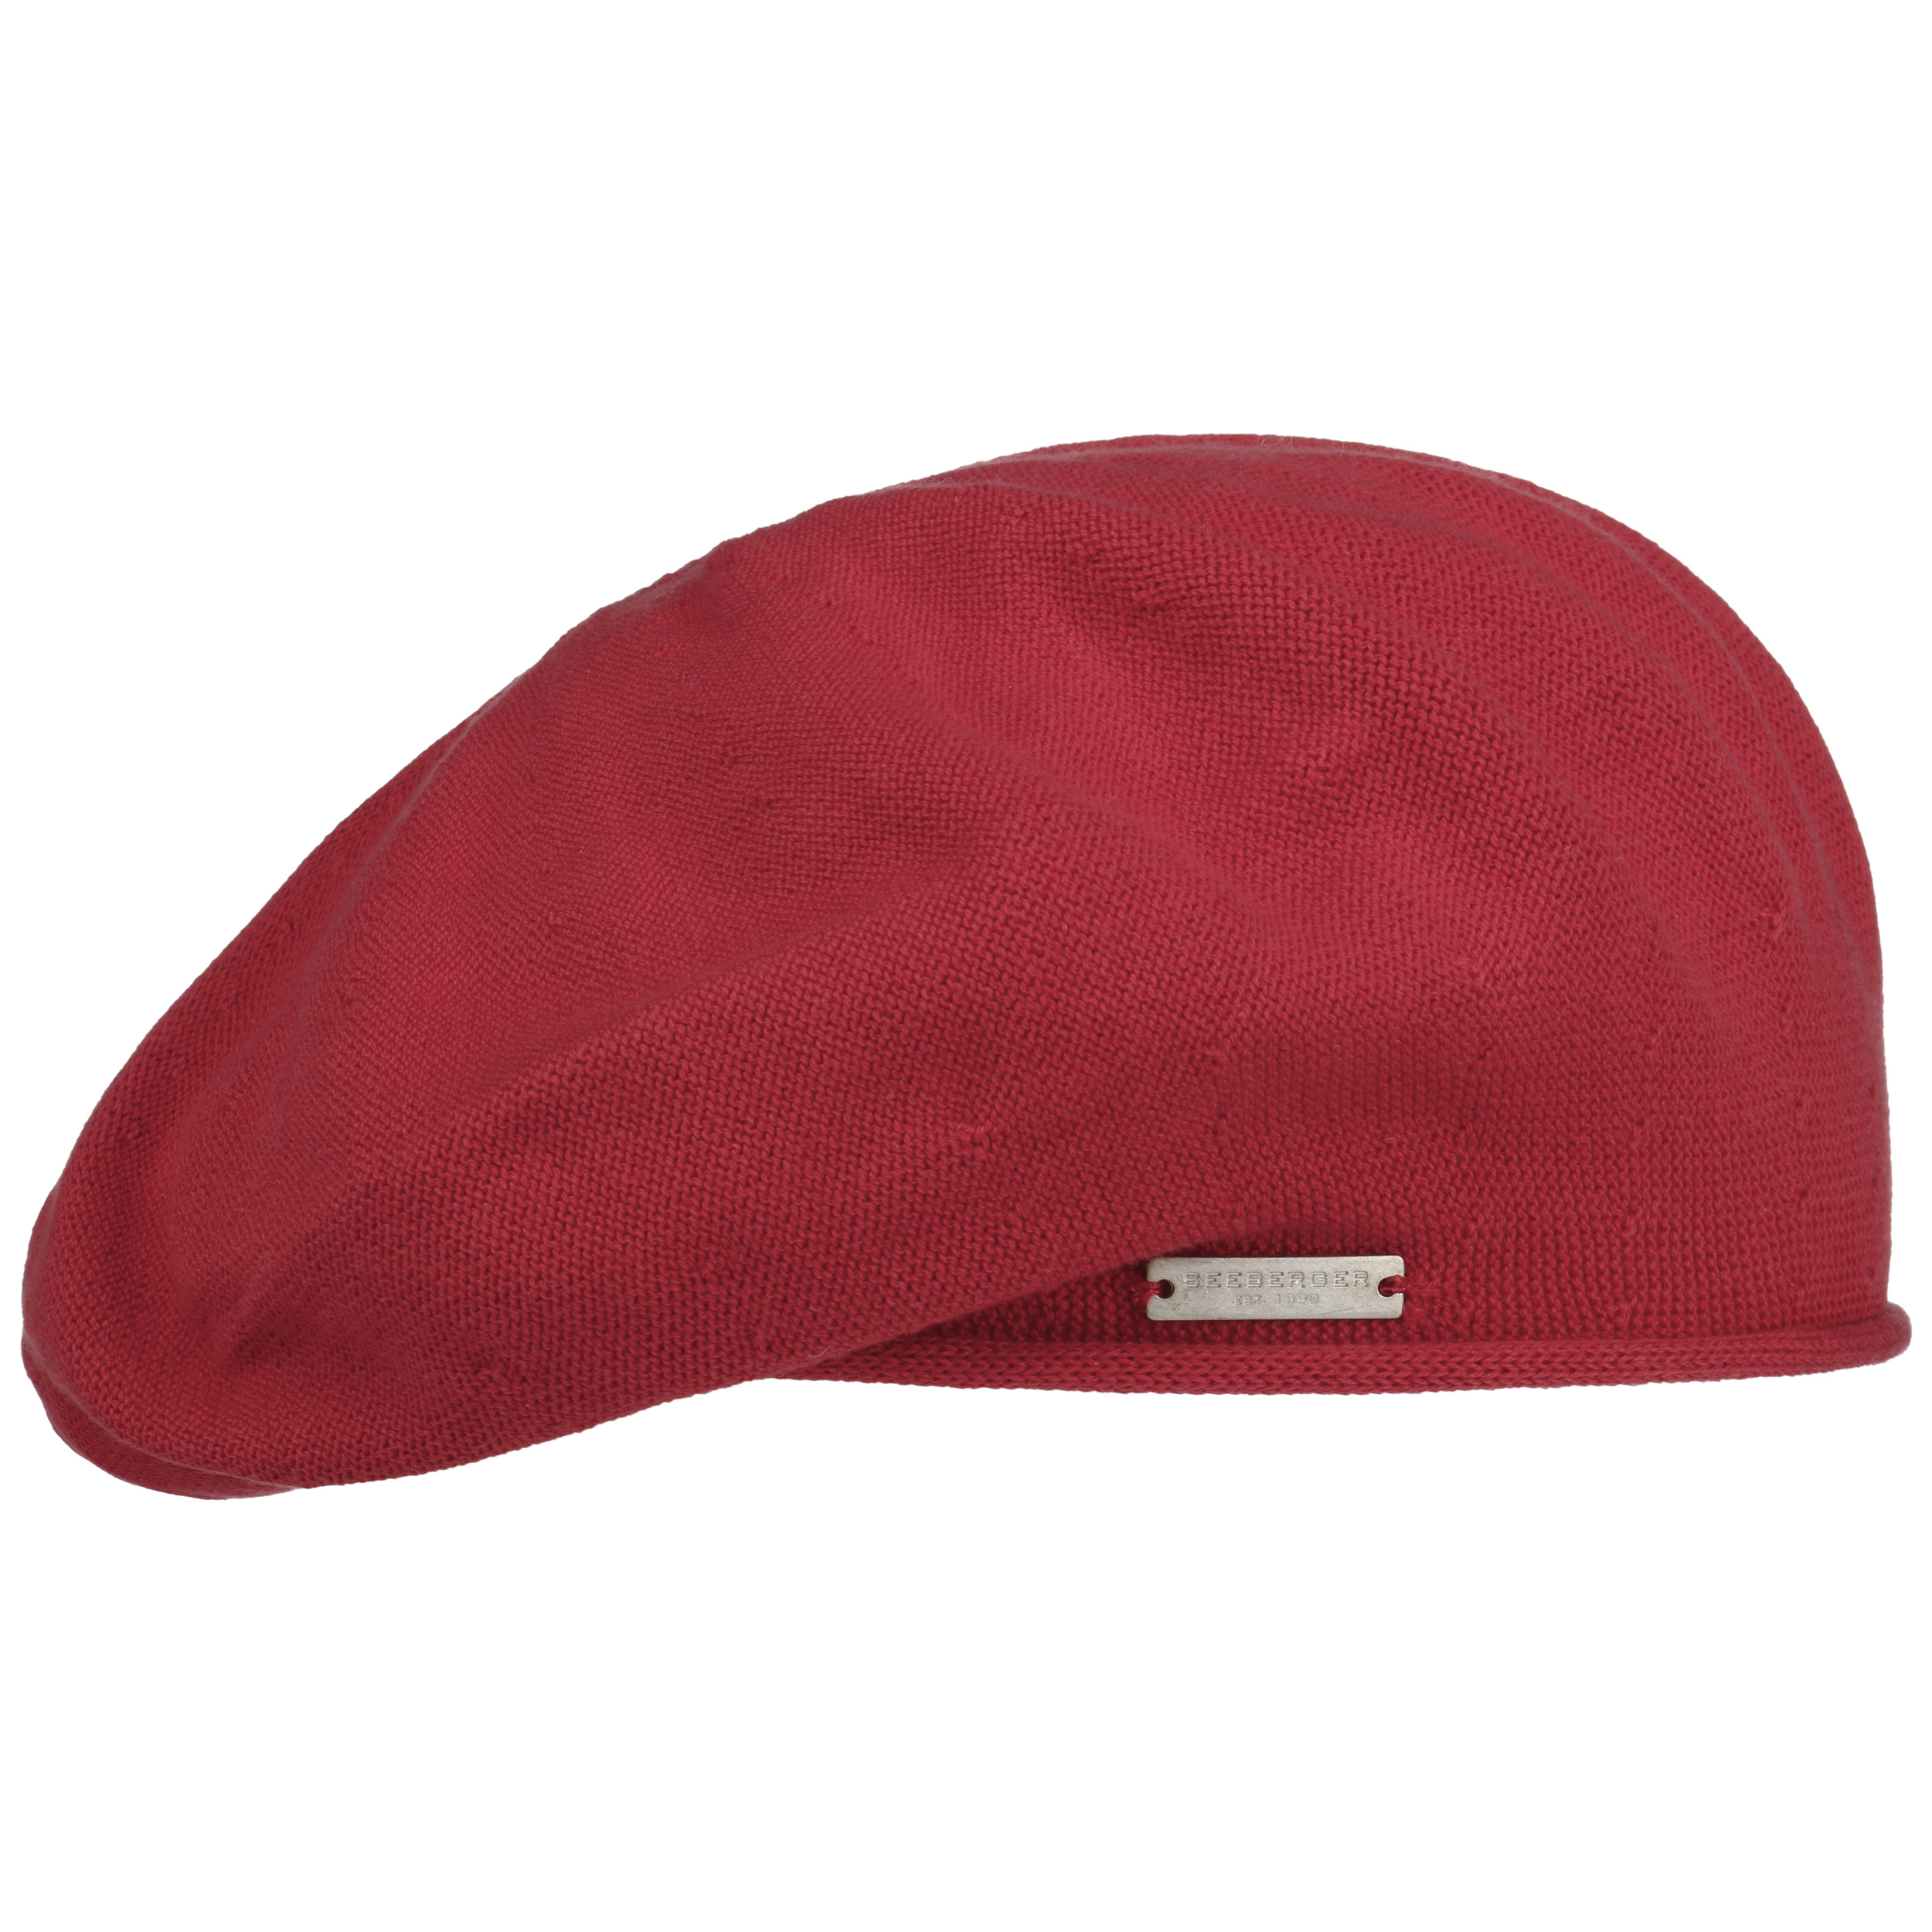 Hat Seeberger red Seeberger 94jHdXq